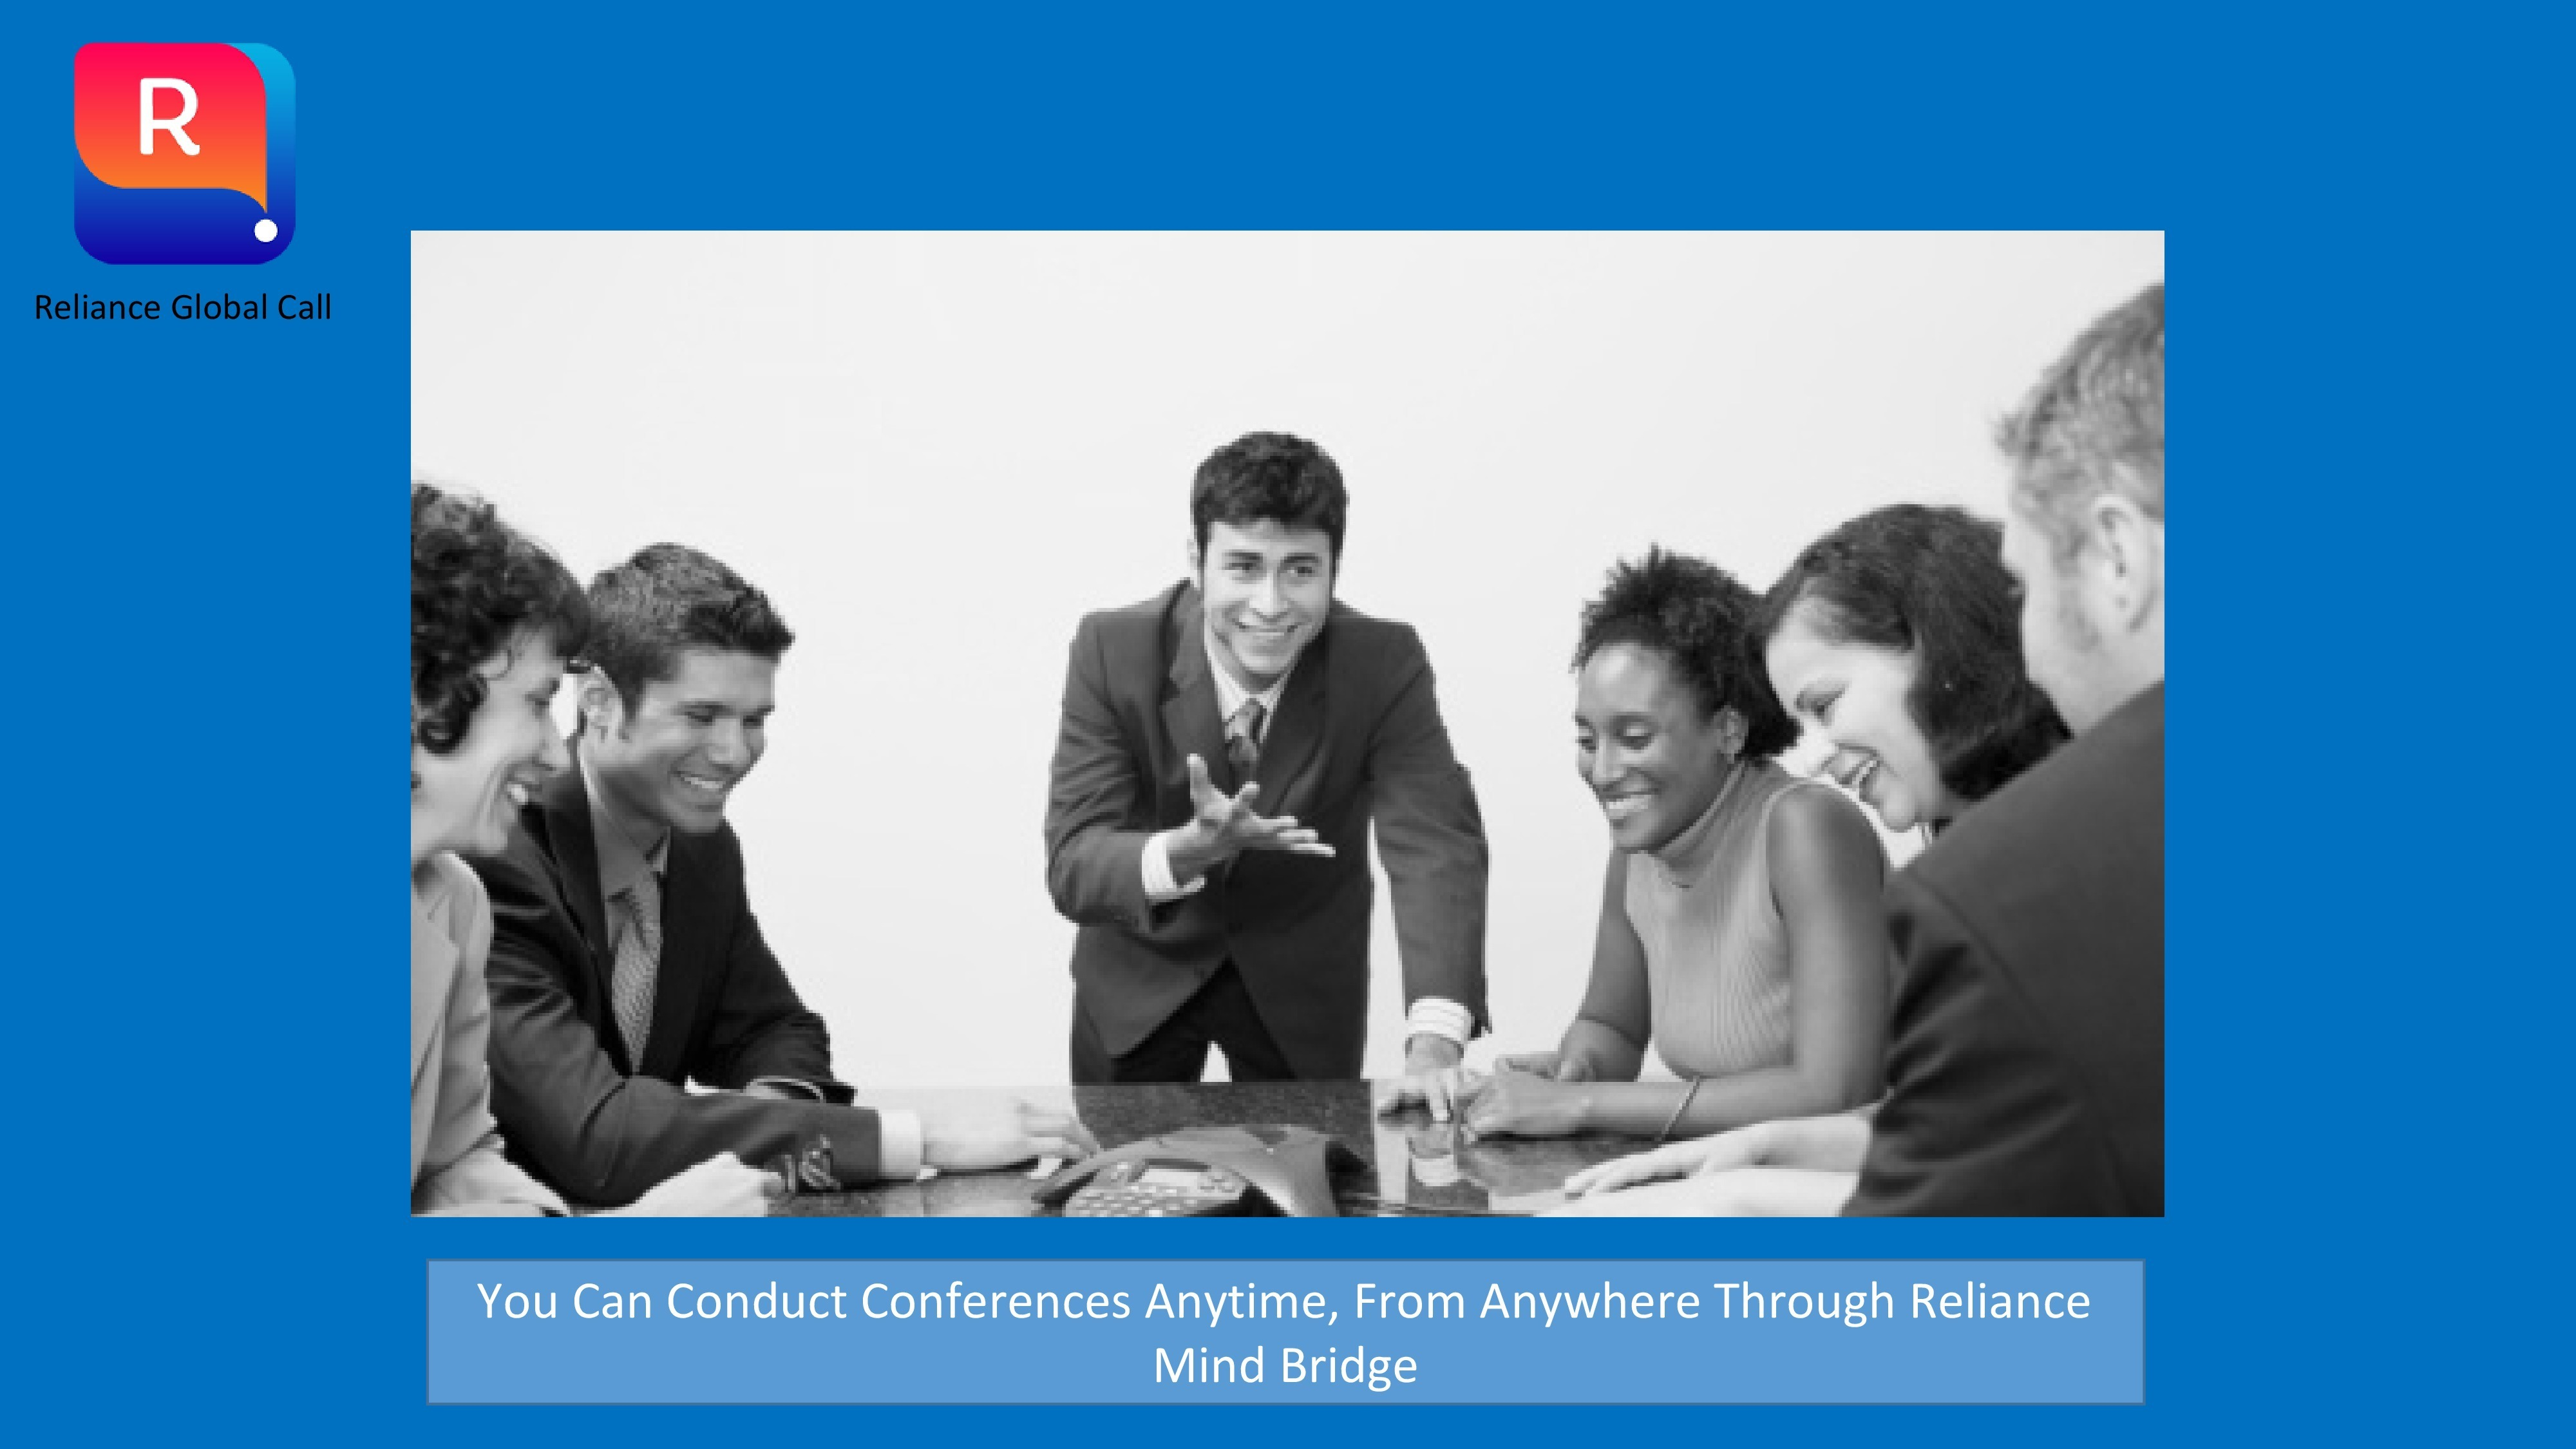 Set up a Conference Call - Reliance Mind Bridge